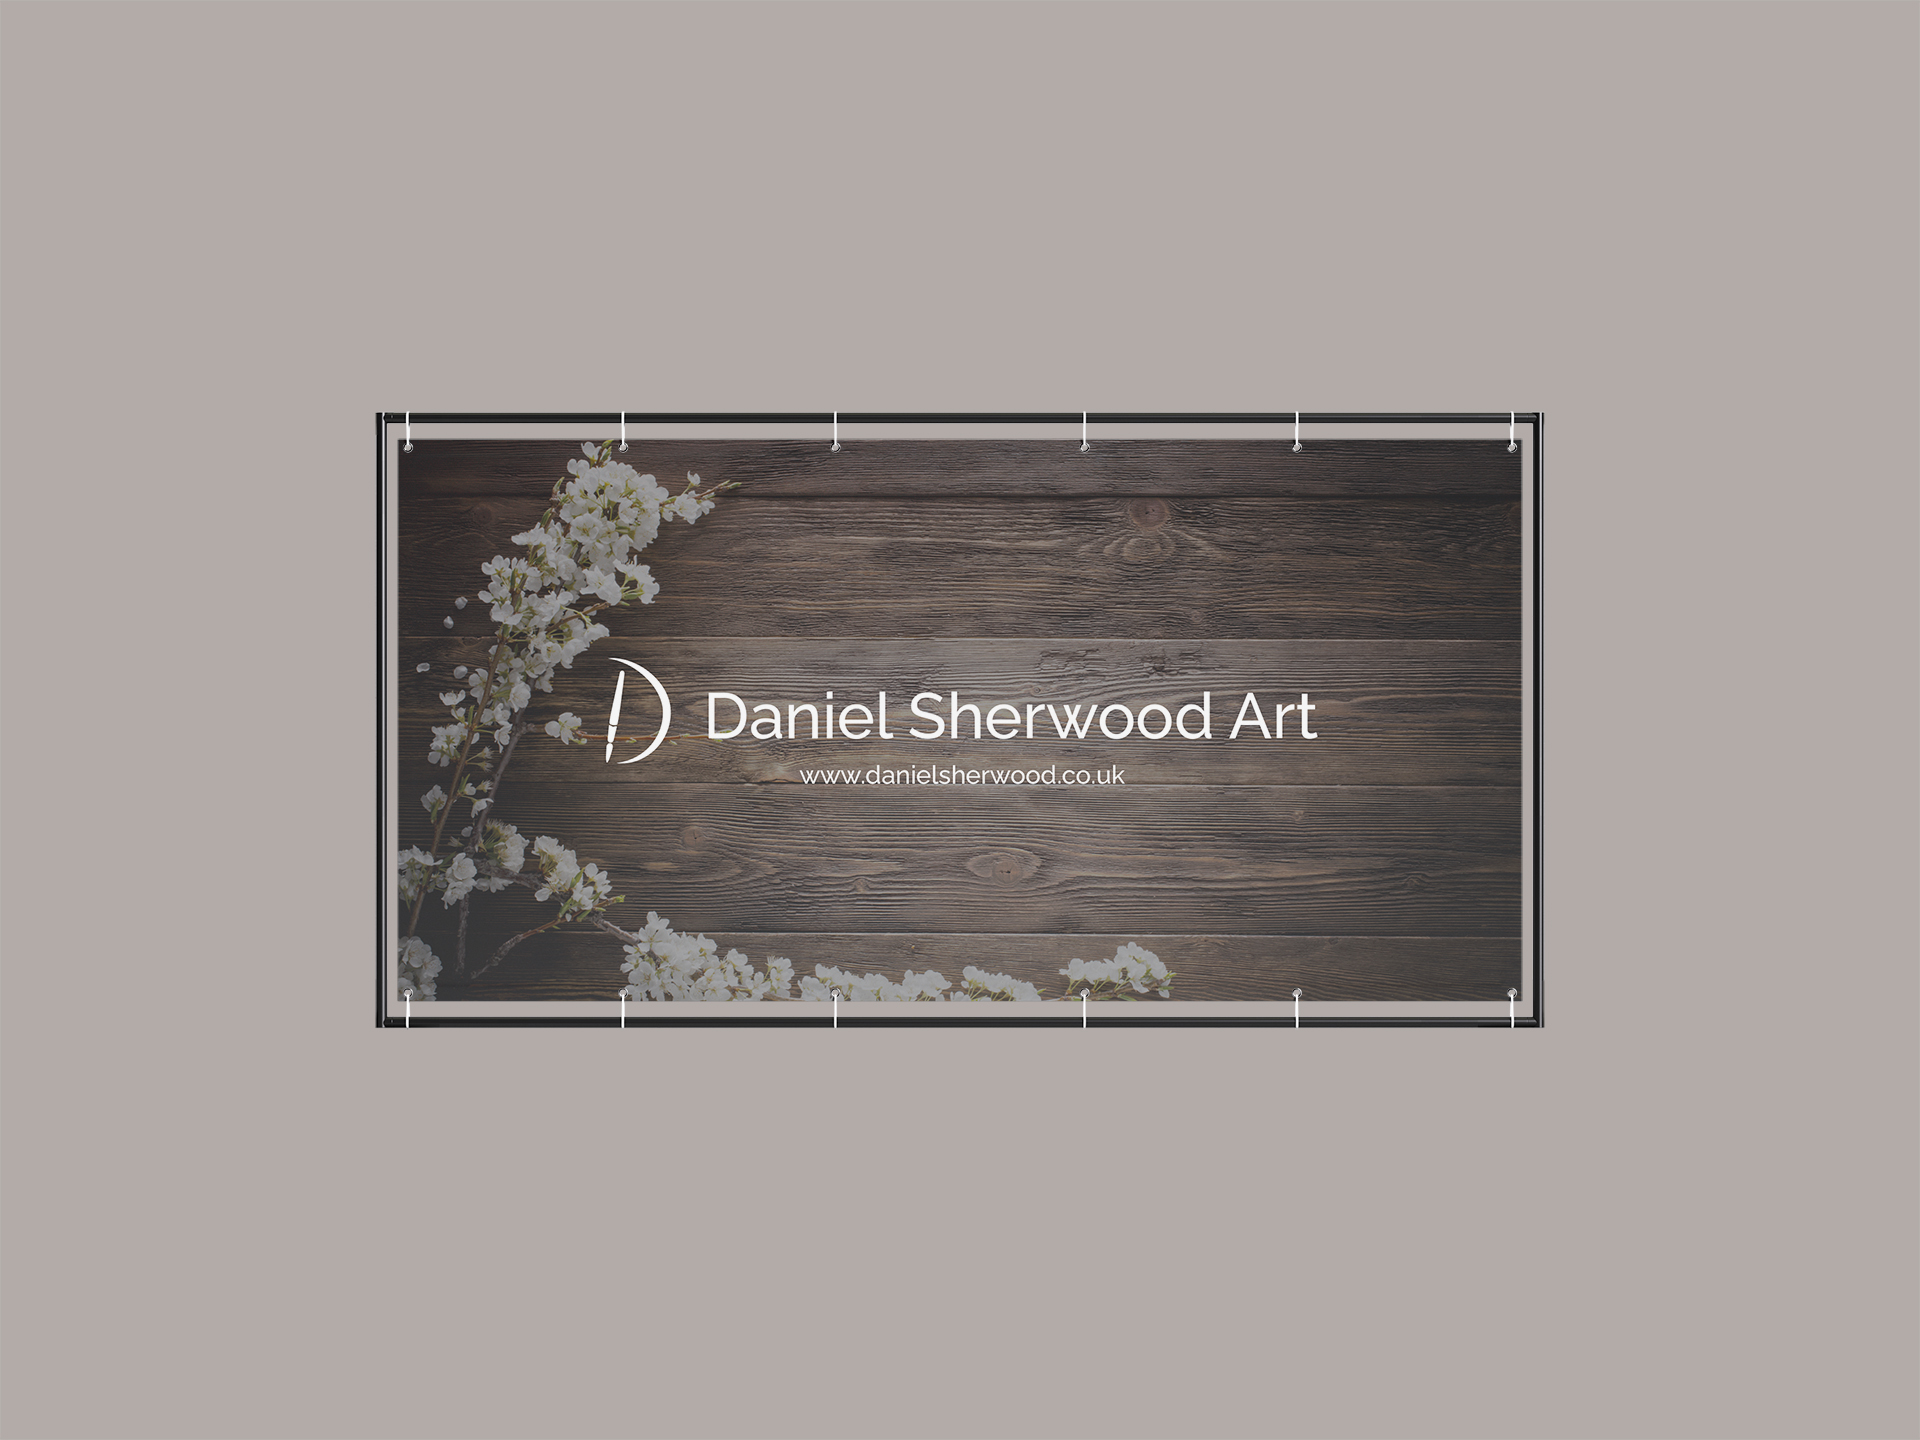 Daniel Sherwood Art - Exhibition banner design